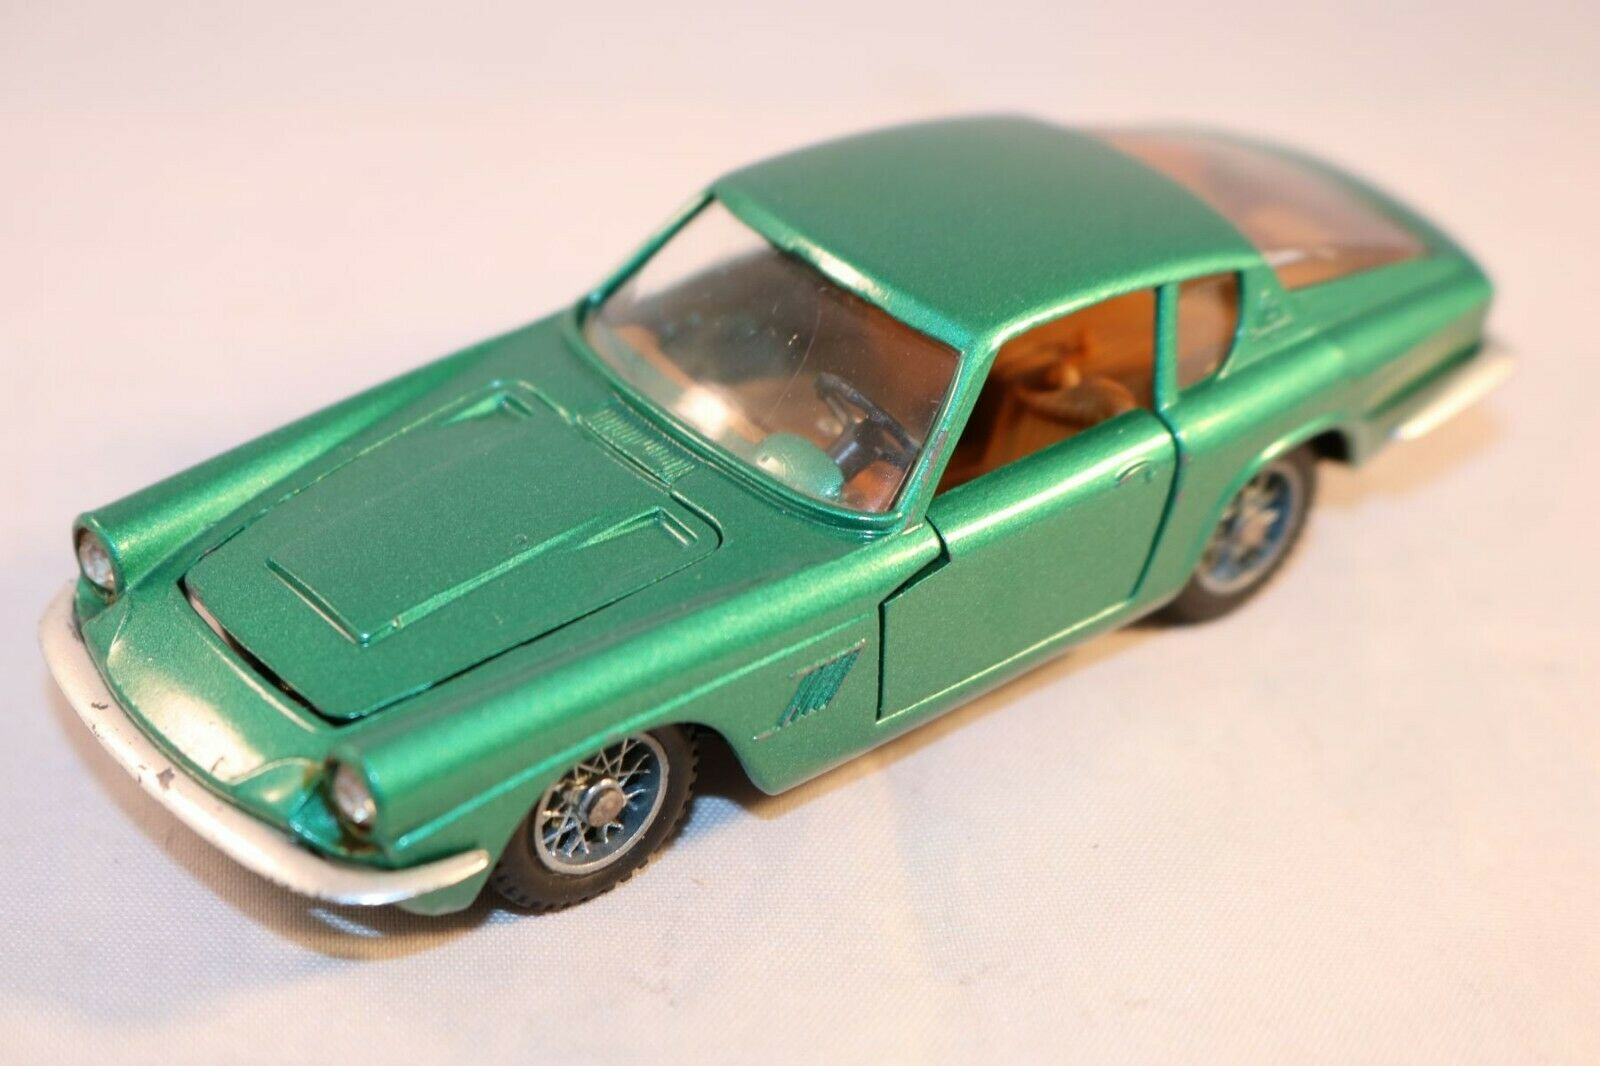 Mebetoys A 10 A10 Maserati Mistral coupe green near mint condition 1 43